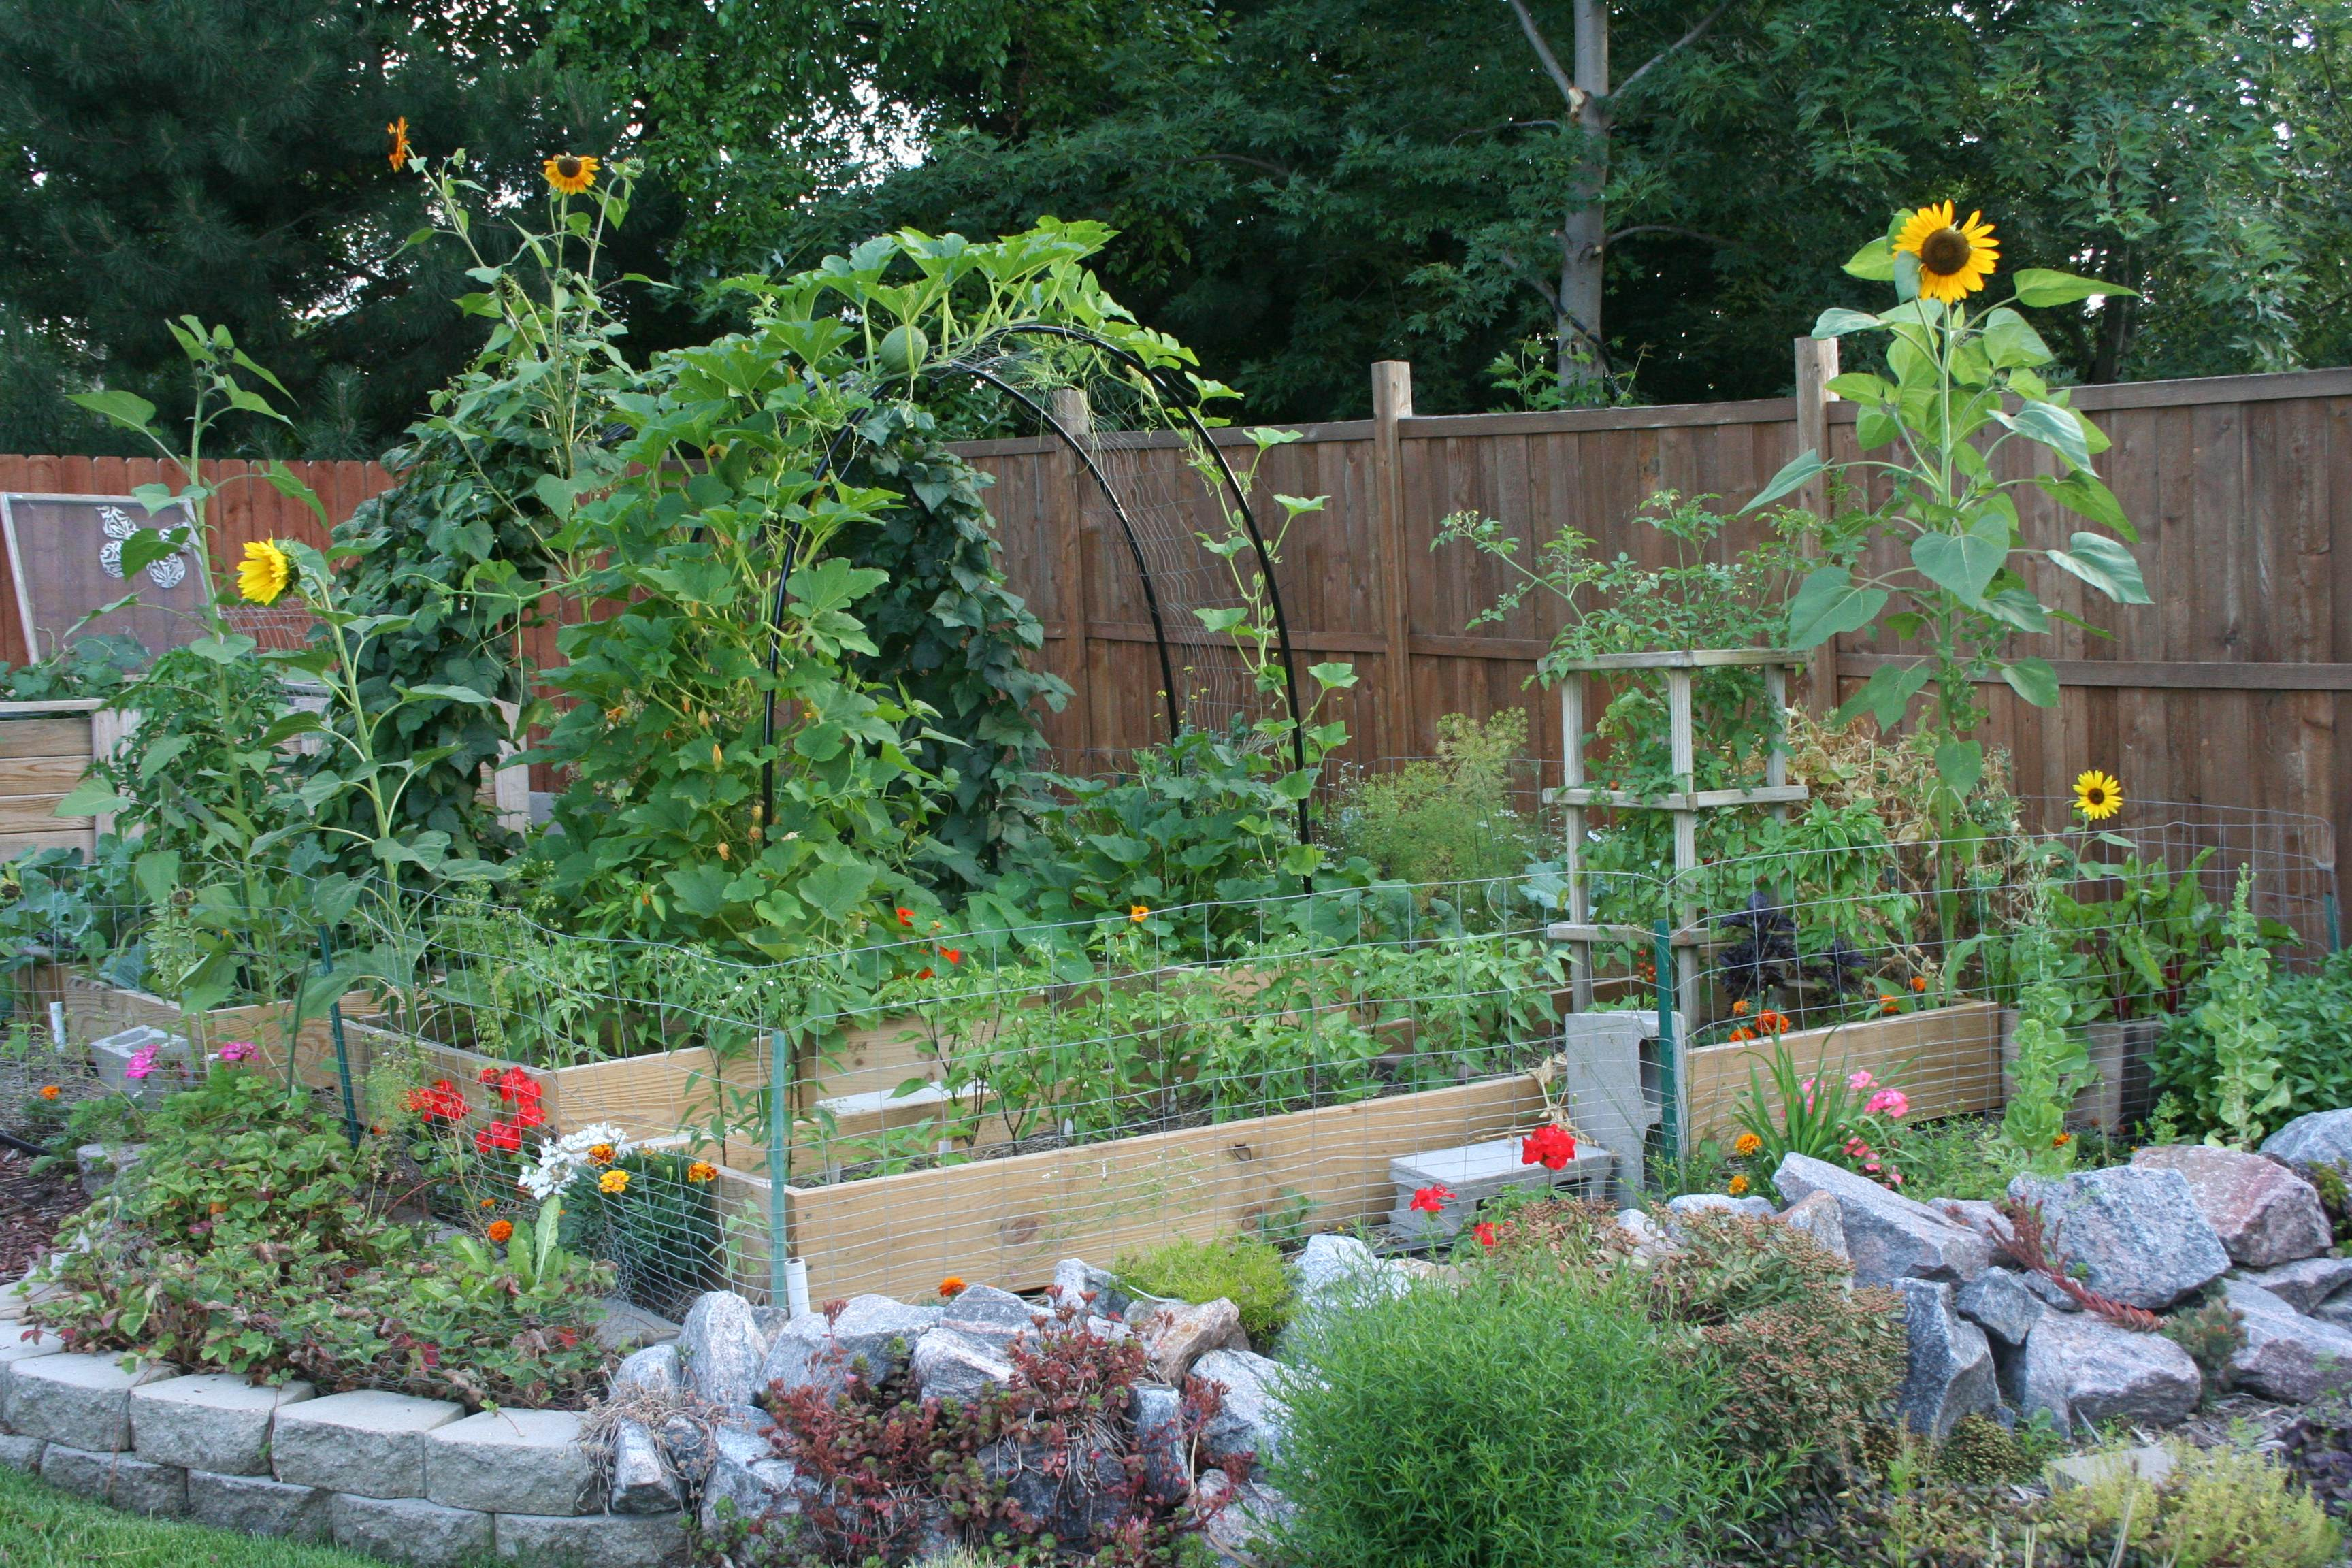 amy archway - Vegetable Garden Ideas Minnesota